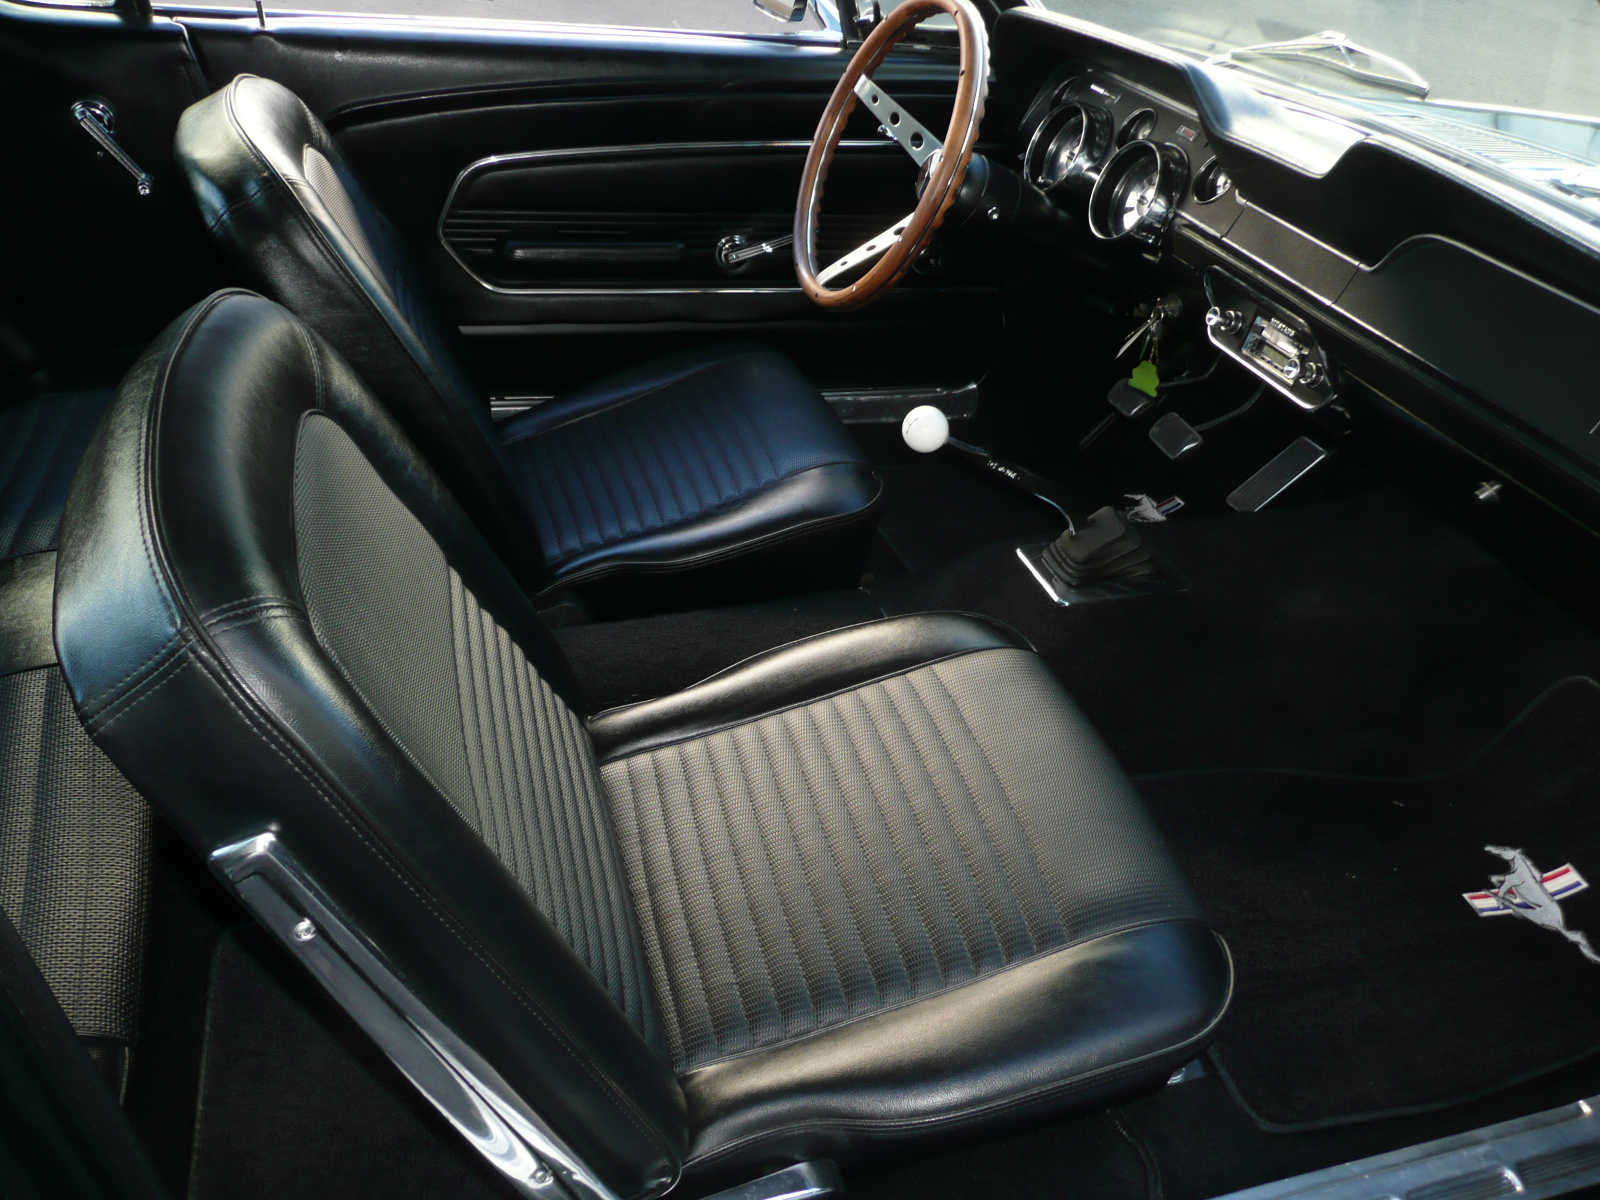 1967 ford mustang gt coupe interior 80976